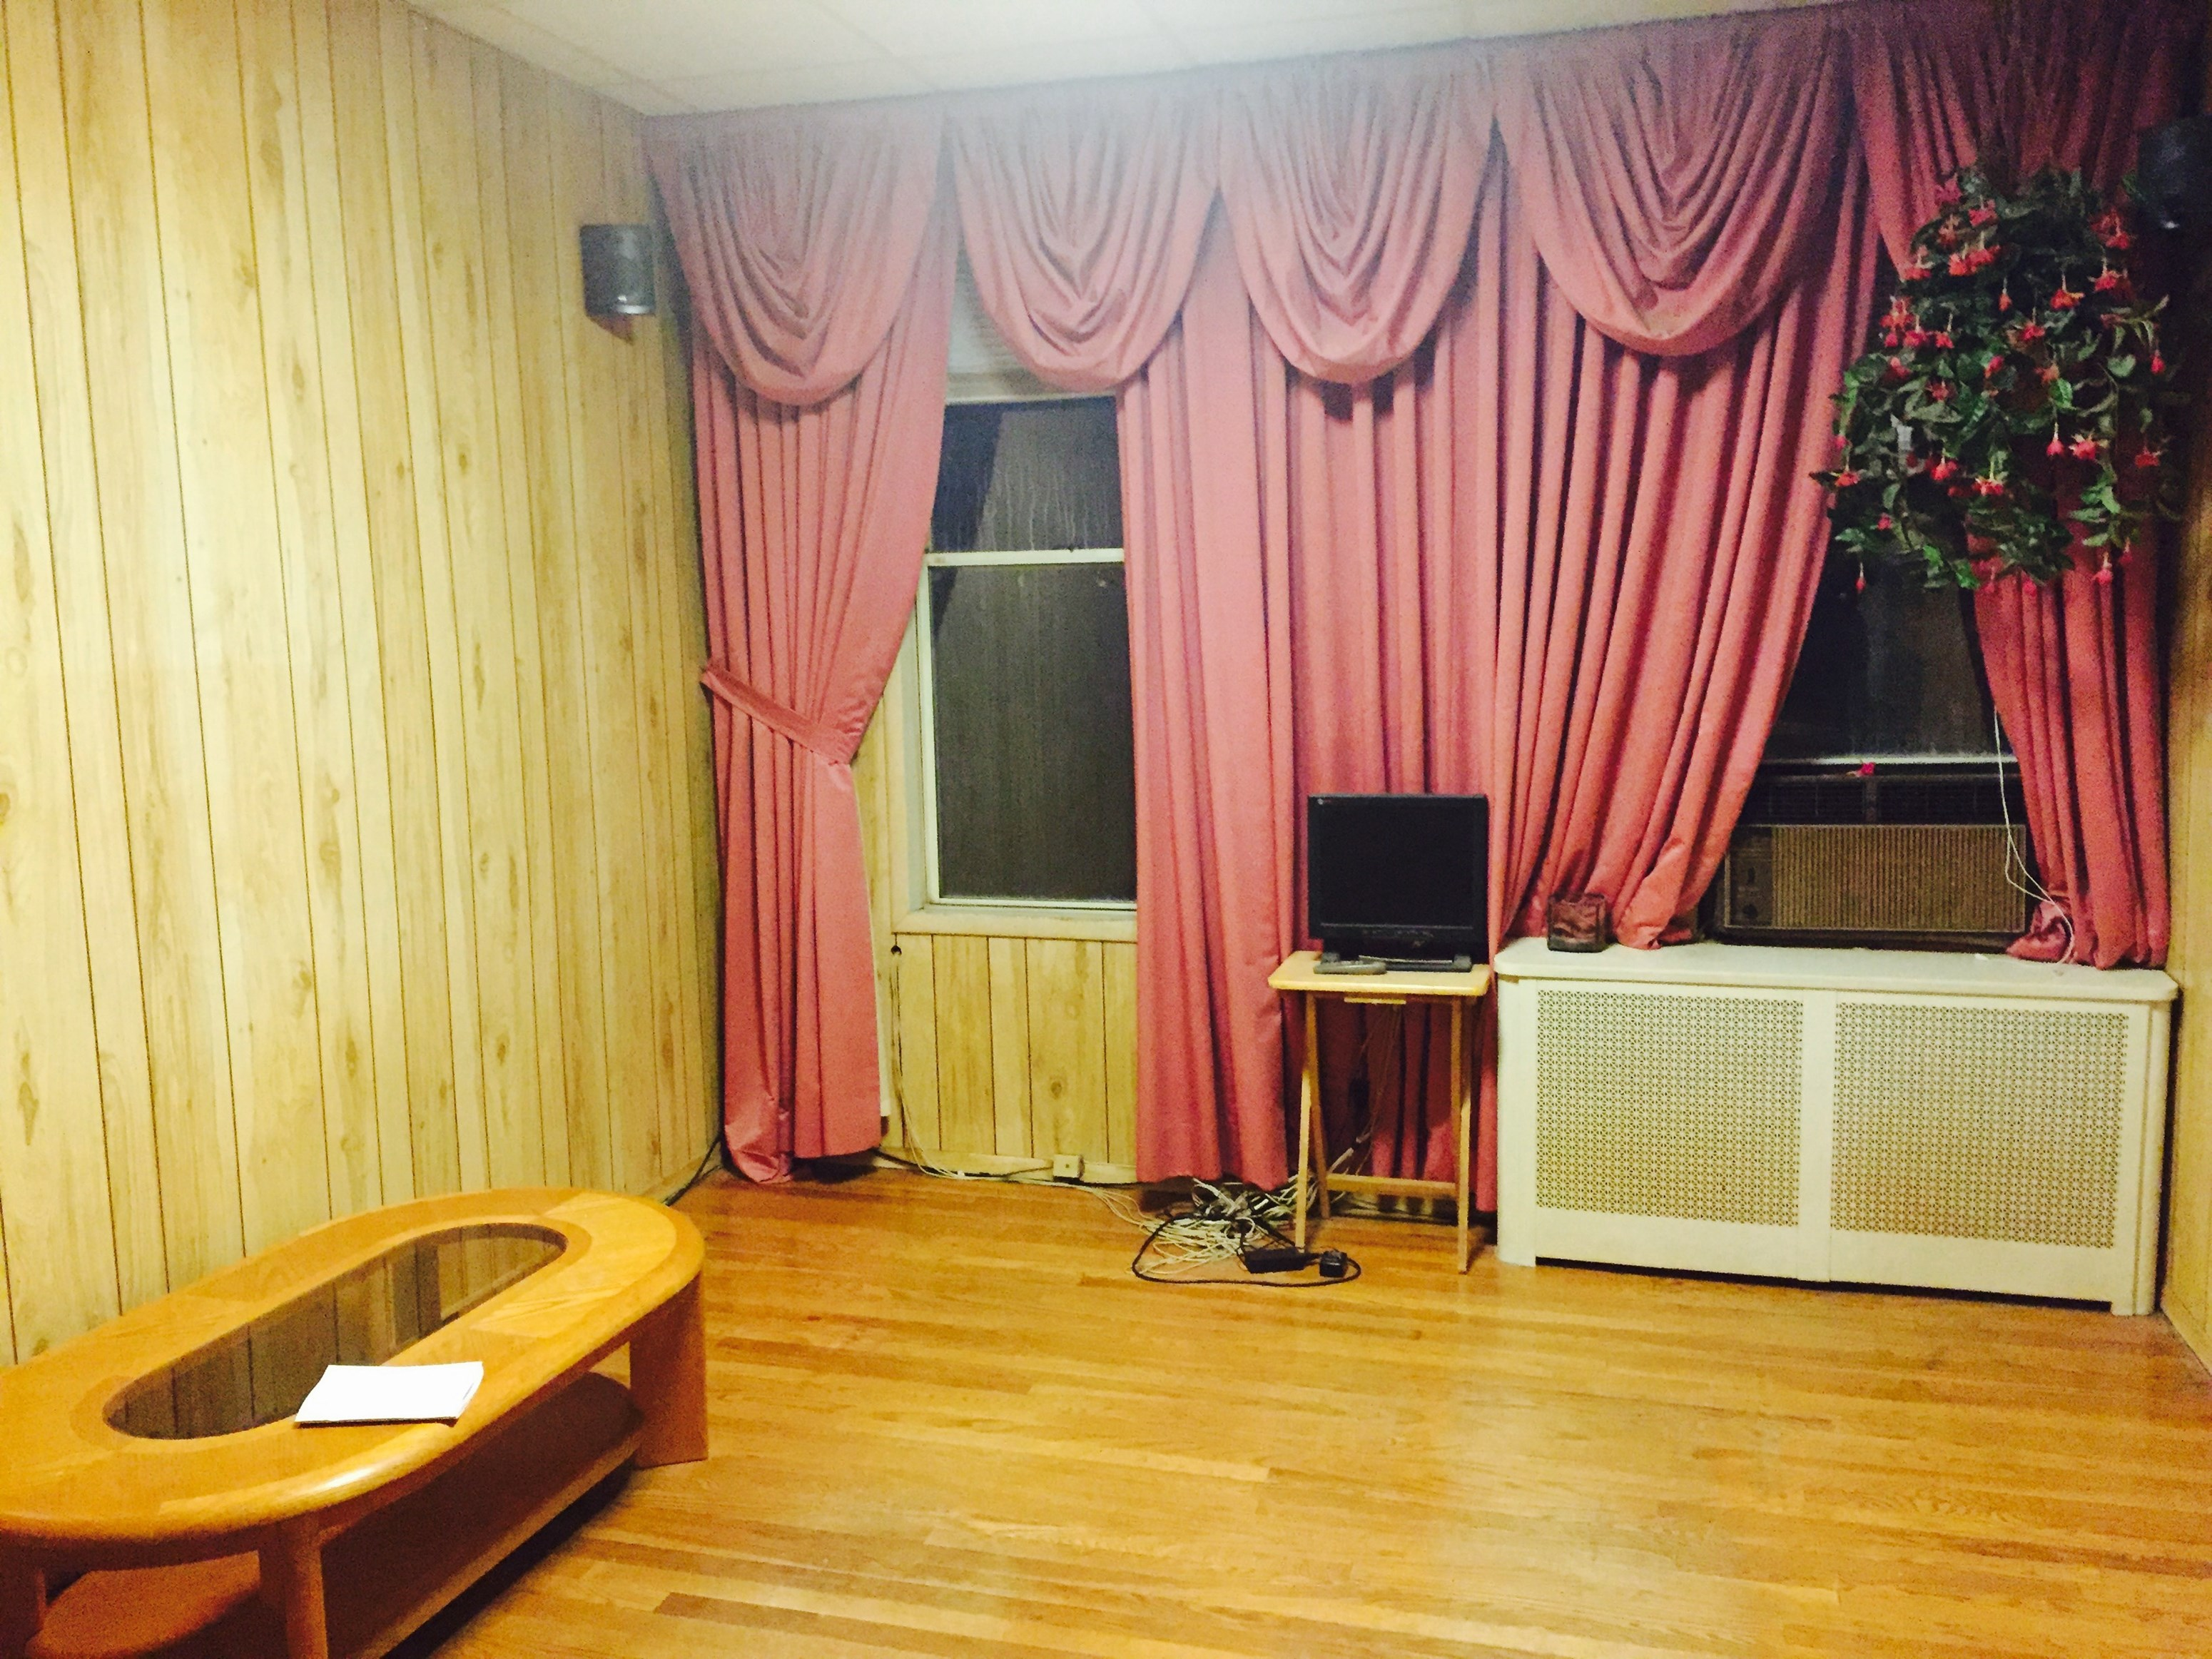 shared room for females in 3 bedroom apartment in jersey city nj